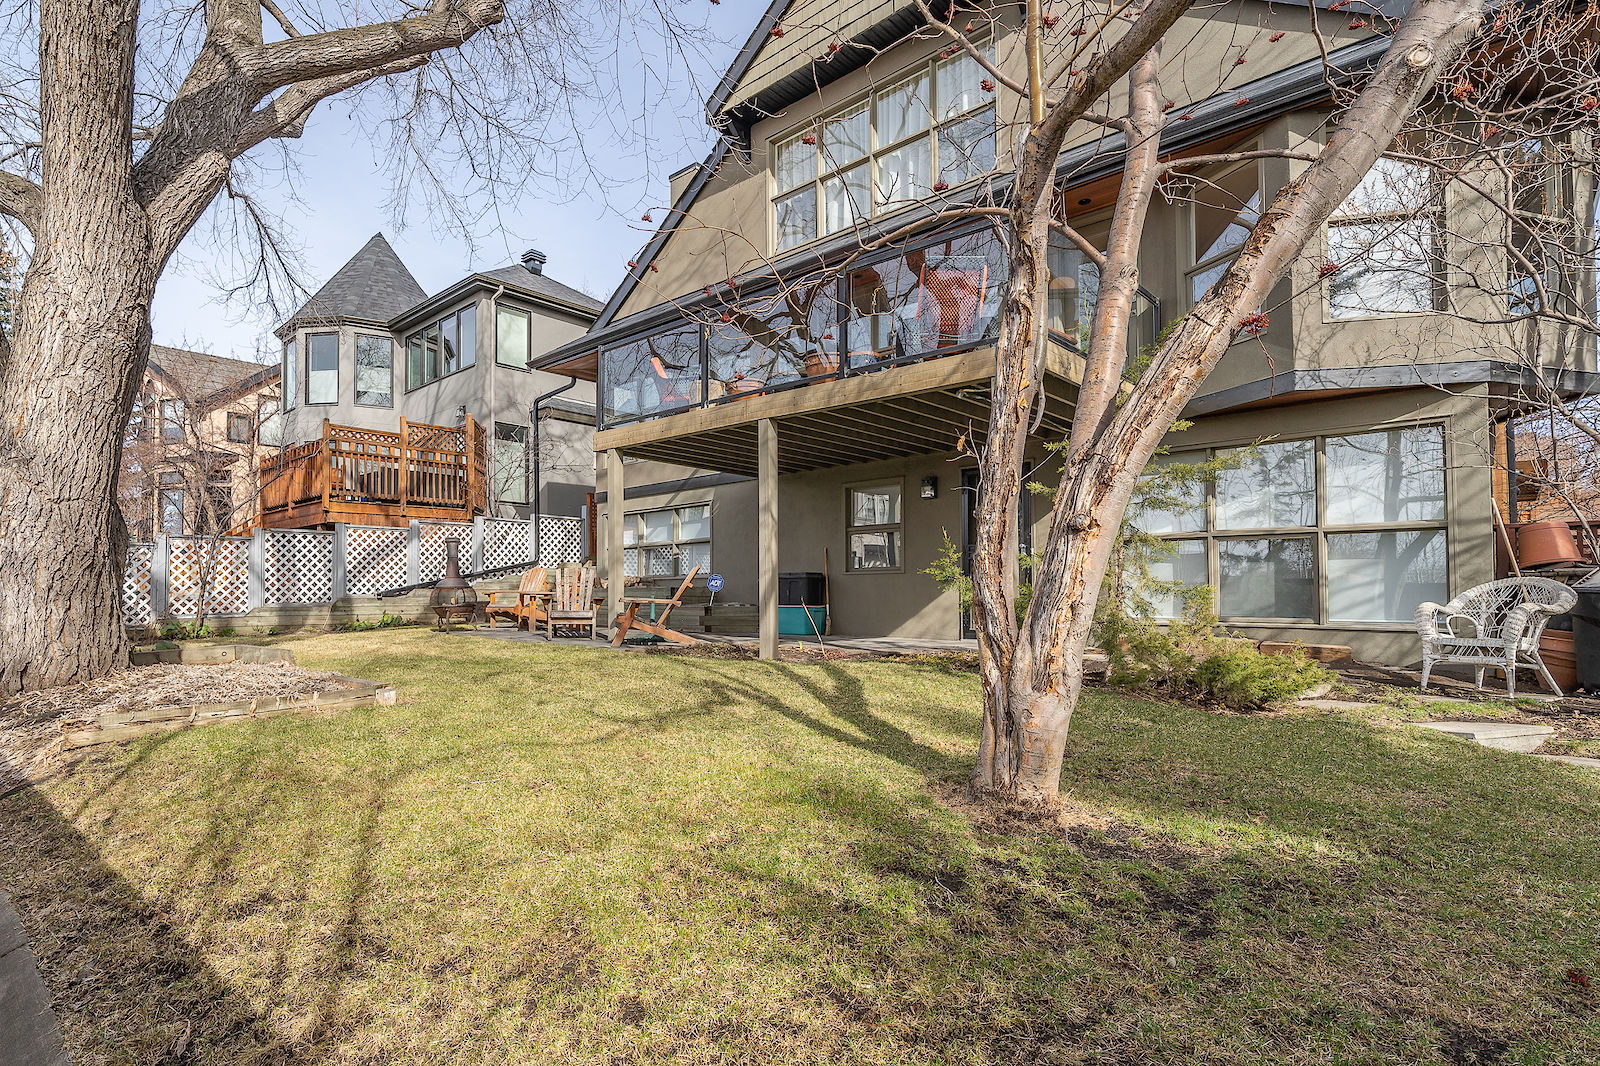 Admirable Calgary Pet Friendly House For Rent Briar Hill Spectacular 5 Bedroom Inner City Custom Built Id 385509 Rentfaster Ca Download Free Architecture Designs Scobabritishbridgeorg